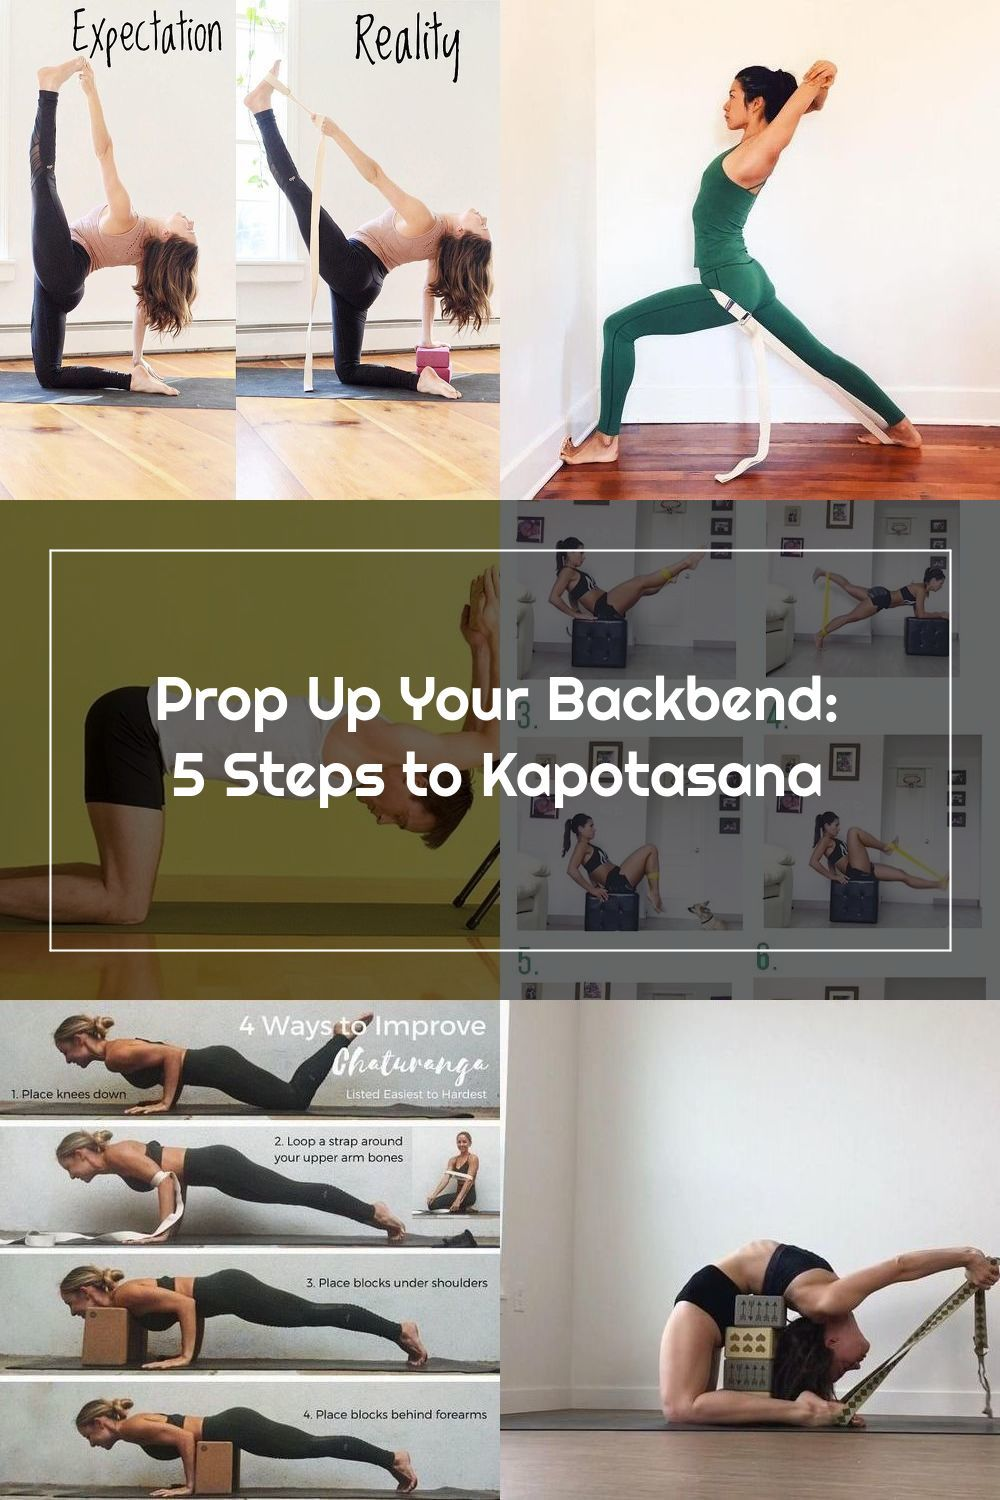 Try Yoga Backbends With Props Block Chair Backbends For Kapotasana In 2020 Yoga Backbend Kapotasana Iyengar Yoga